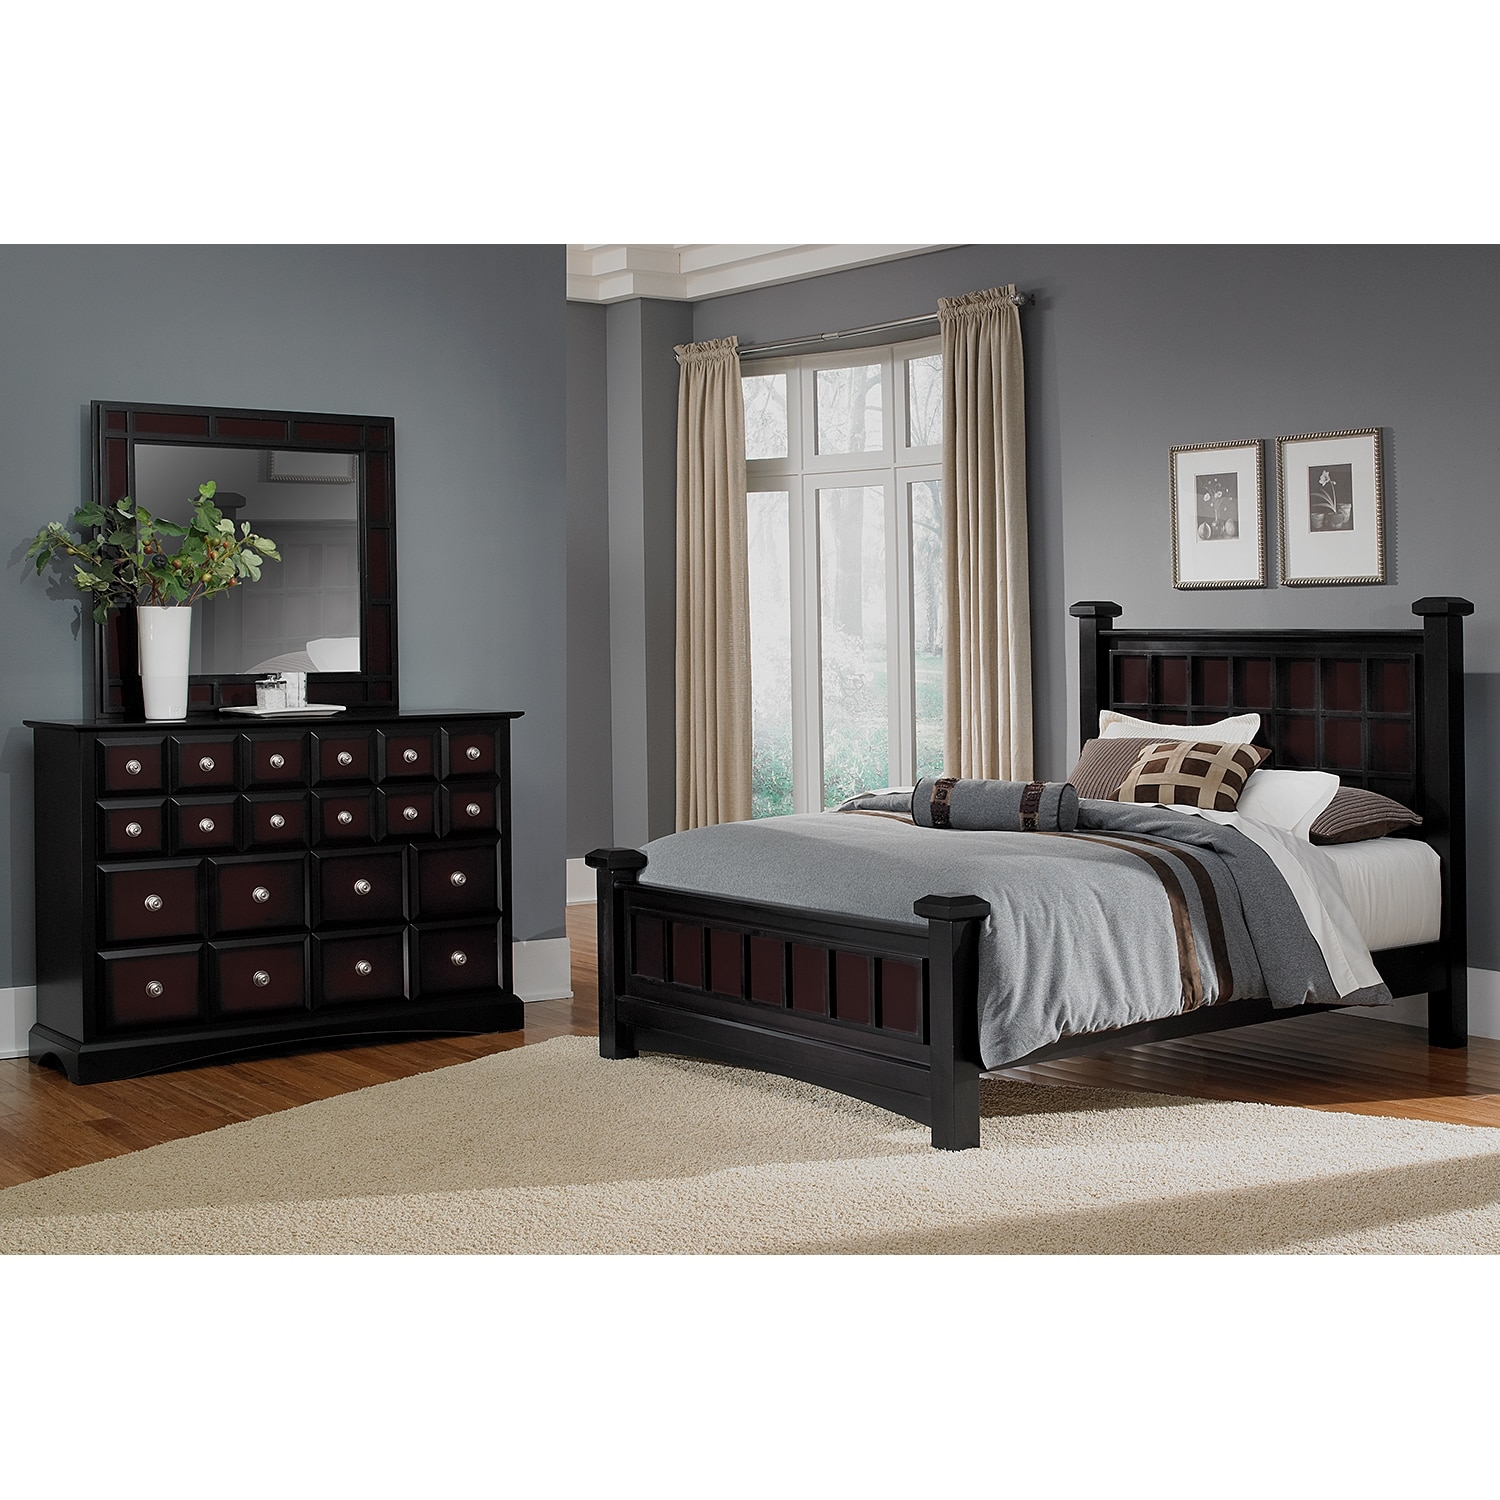 Winchester 5 pc king bedroom value city furniture for 5 bedroom